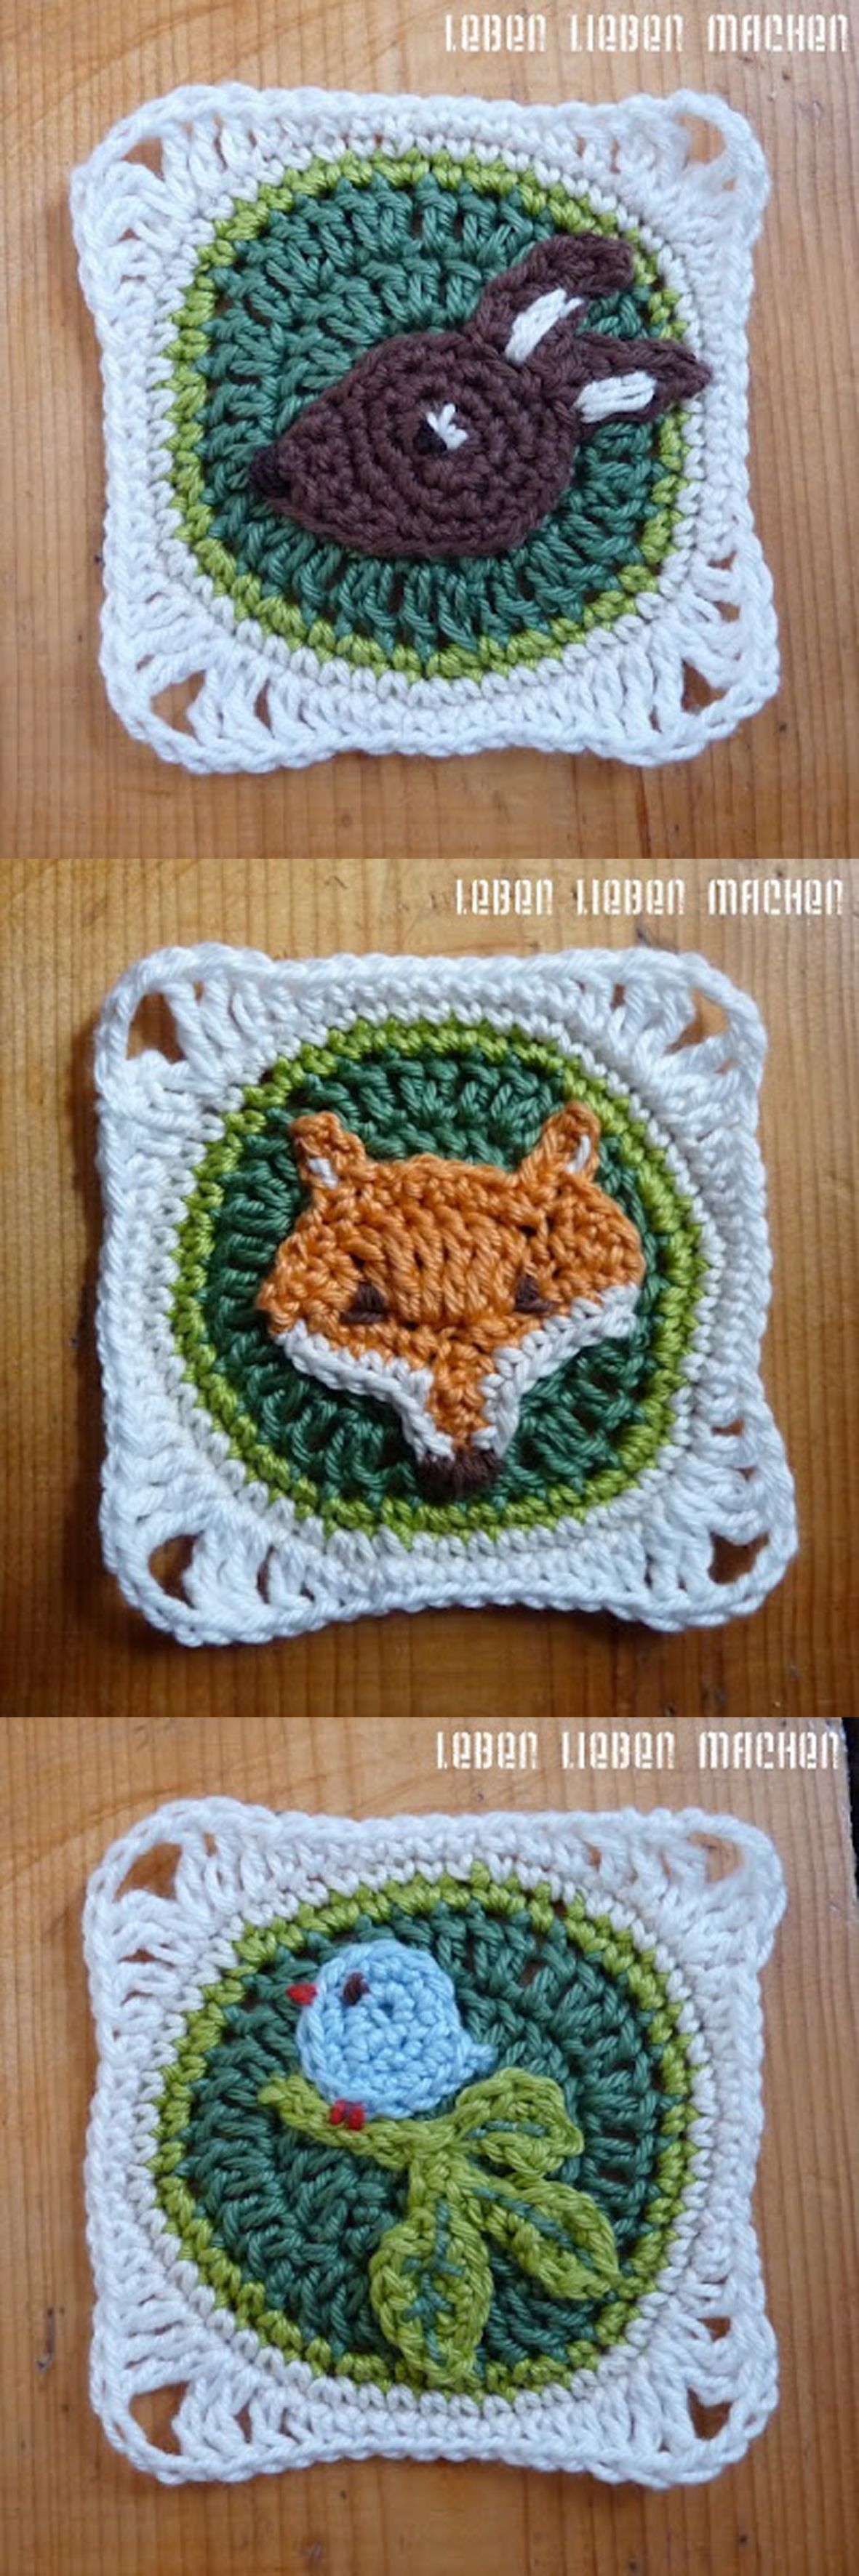 Crochet Animals Granny Squares - Chart and German Tutorial | Crochet ...